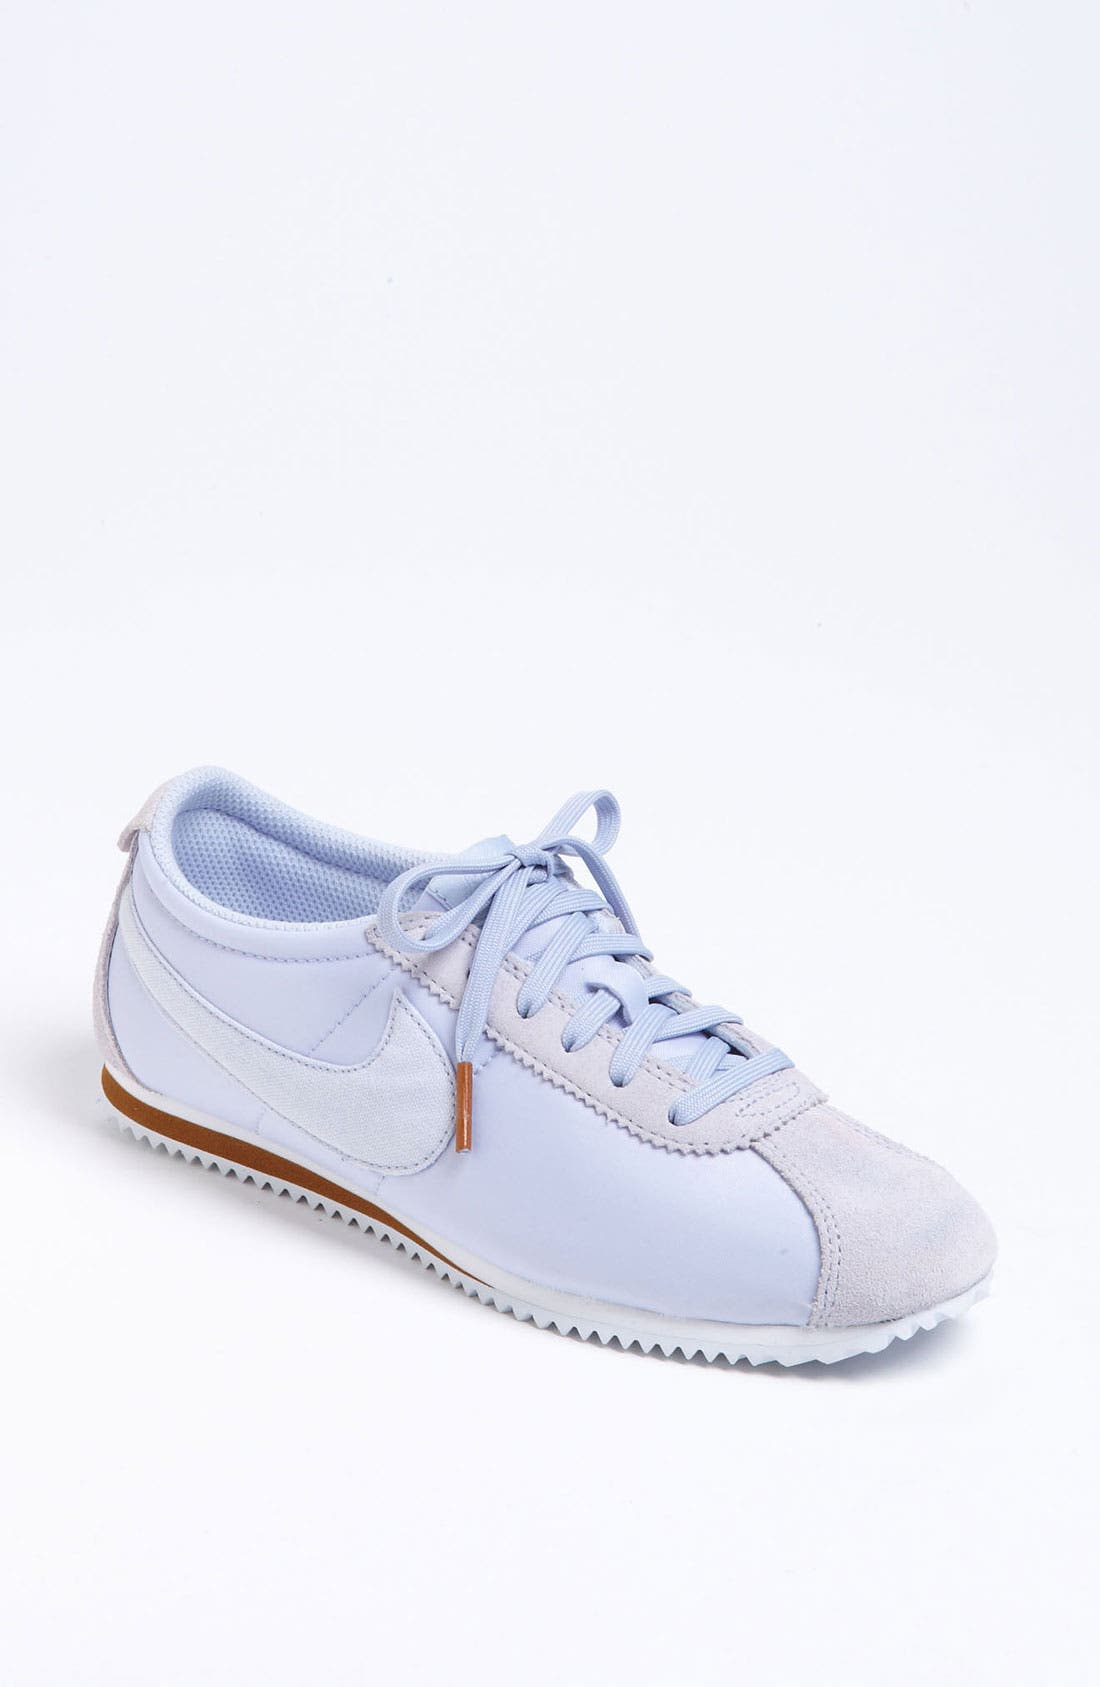 Alternate Image 1 Selected - Nike 'Lady Cortez' Sneaker